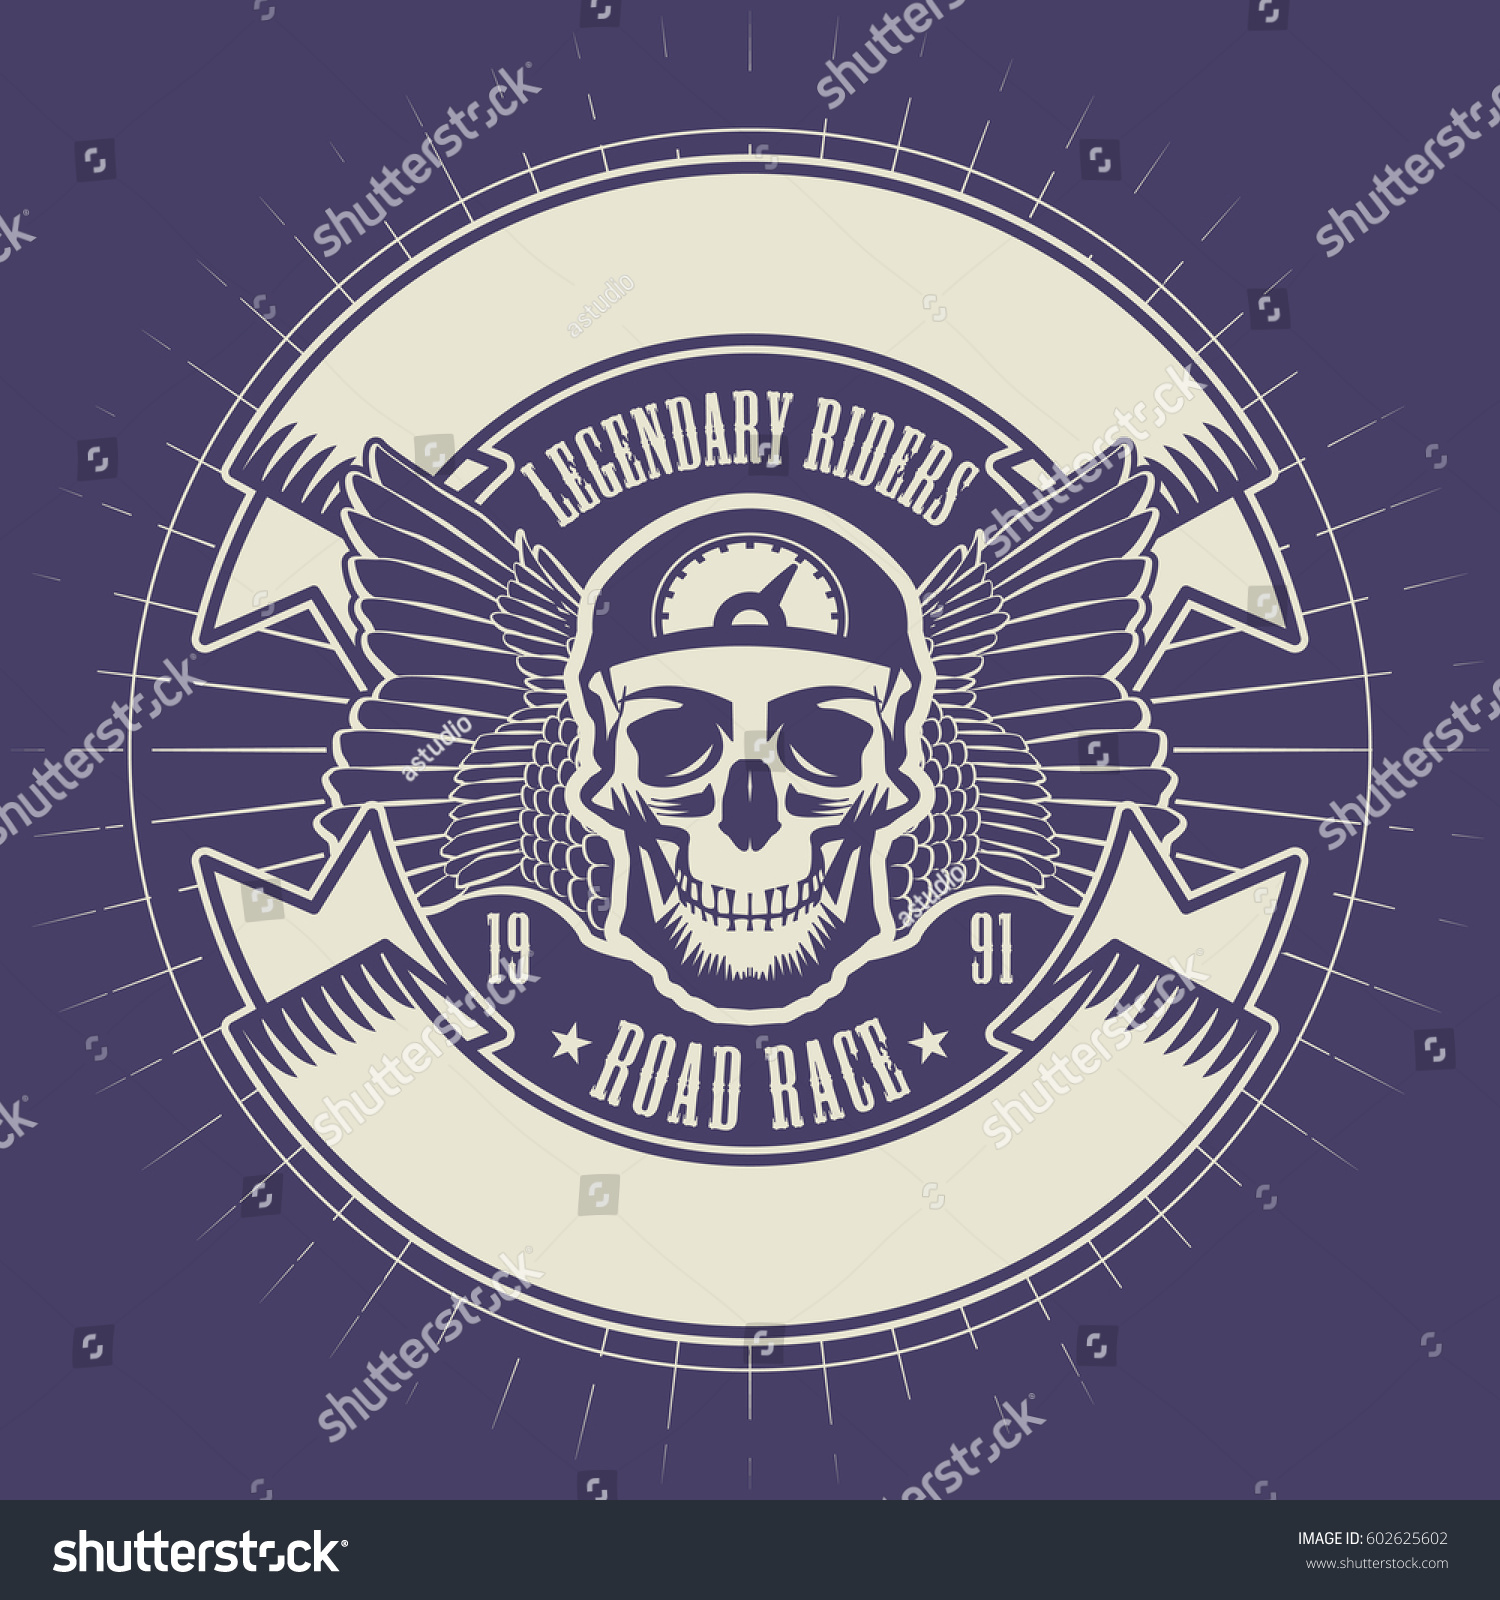 Bikers event festival emblem skull space stock vector 602625602 bikers event or festival emblem with skull and space for text vector illustration buycottarizona Images